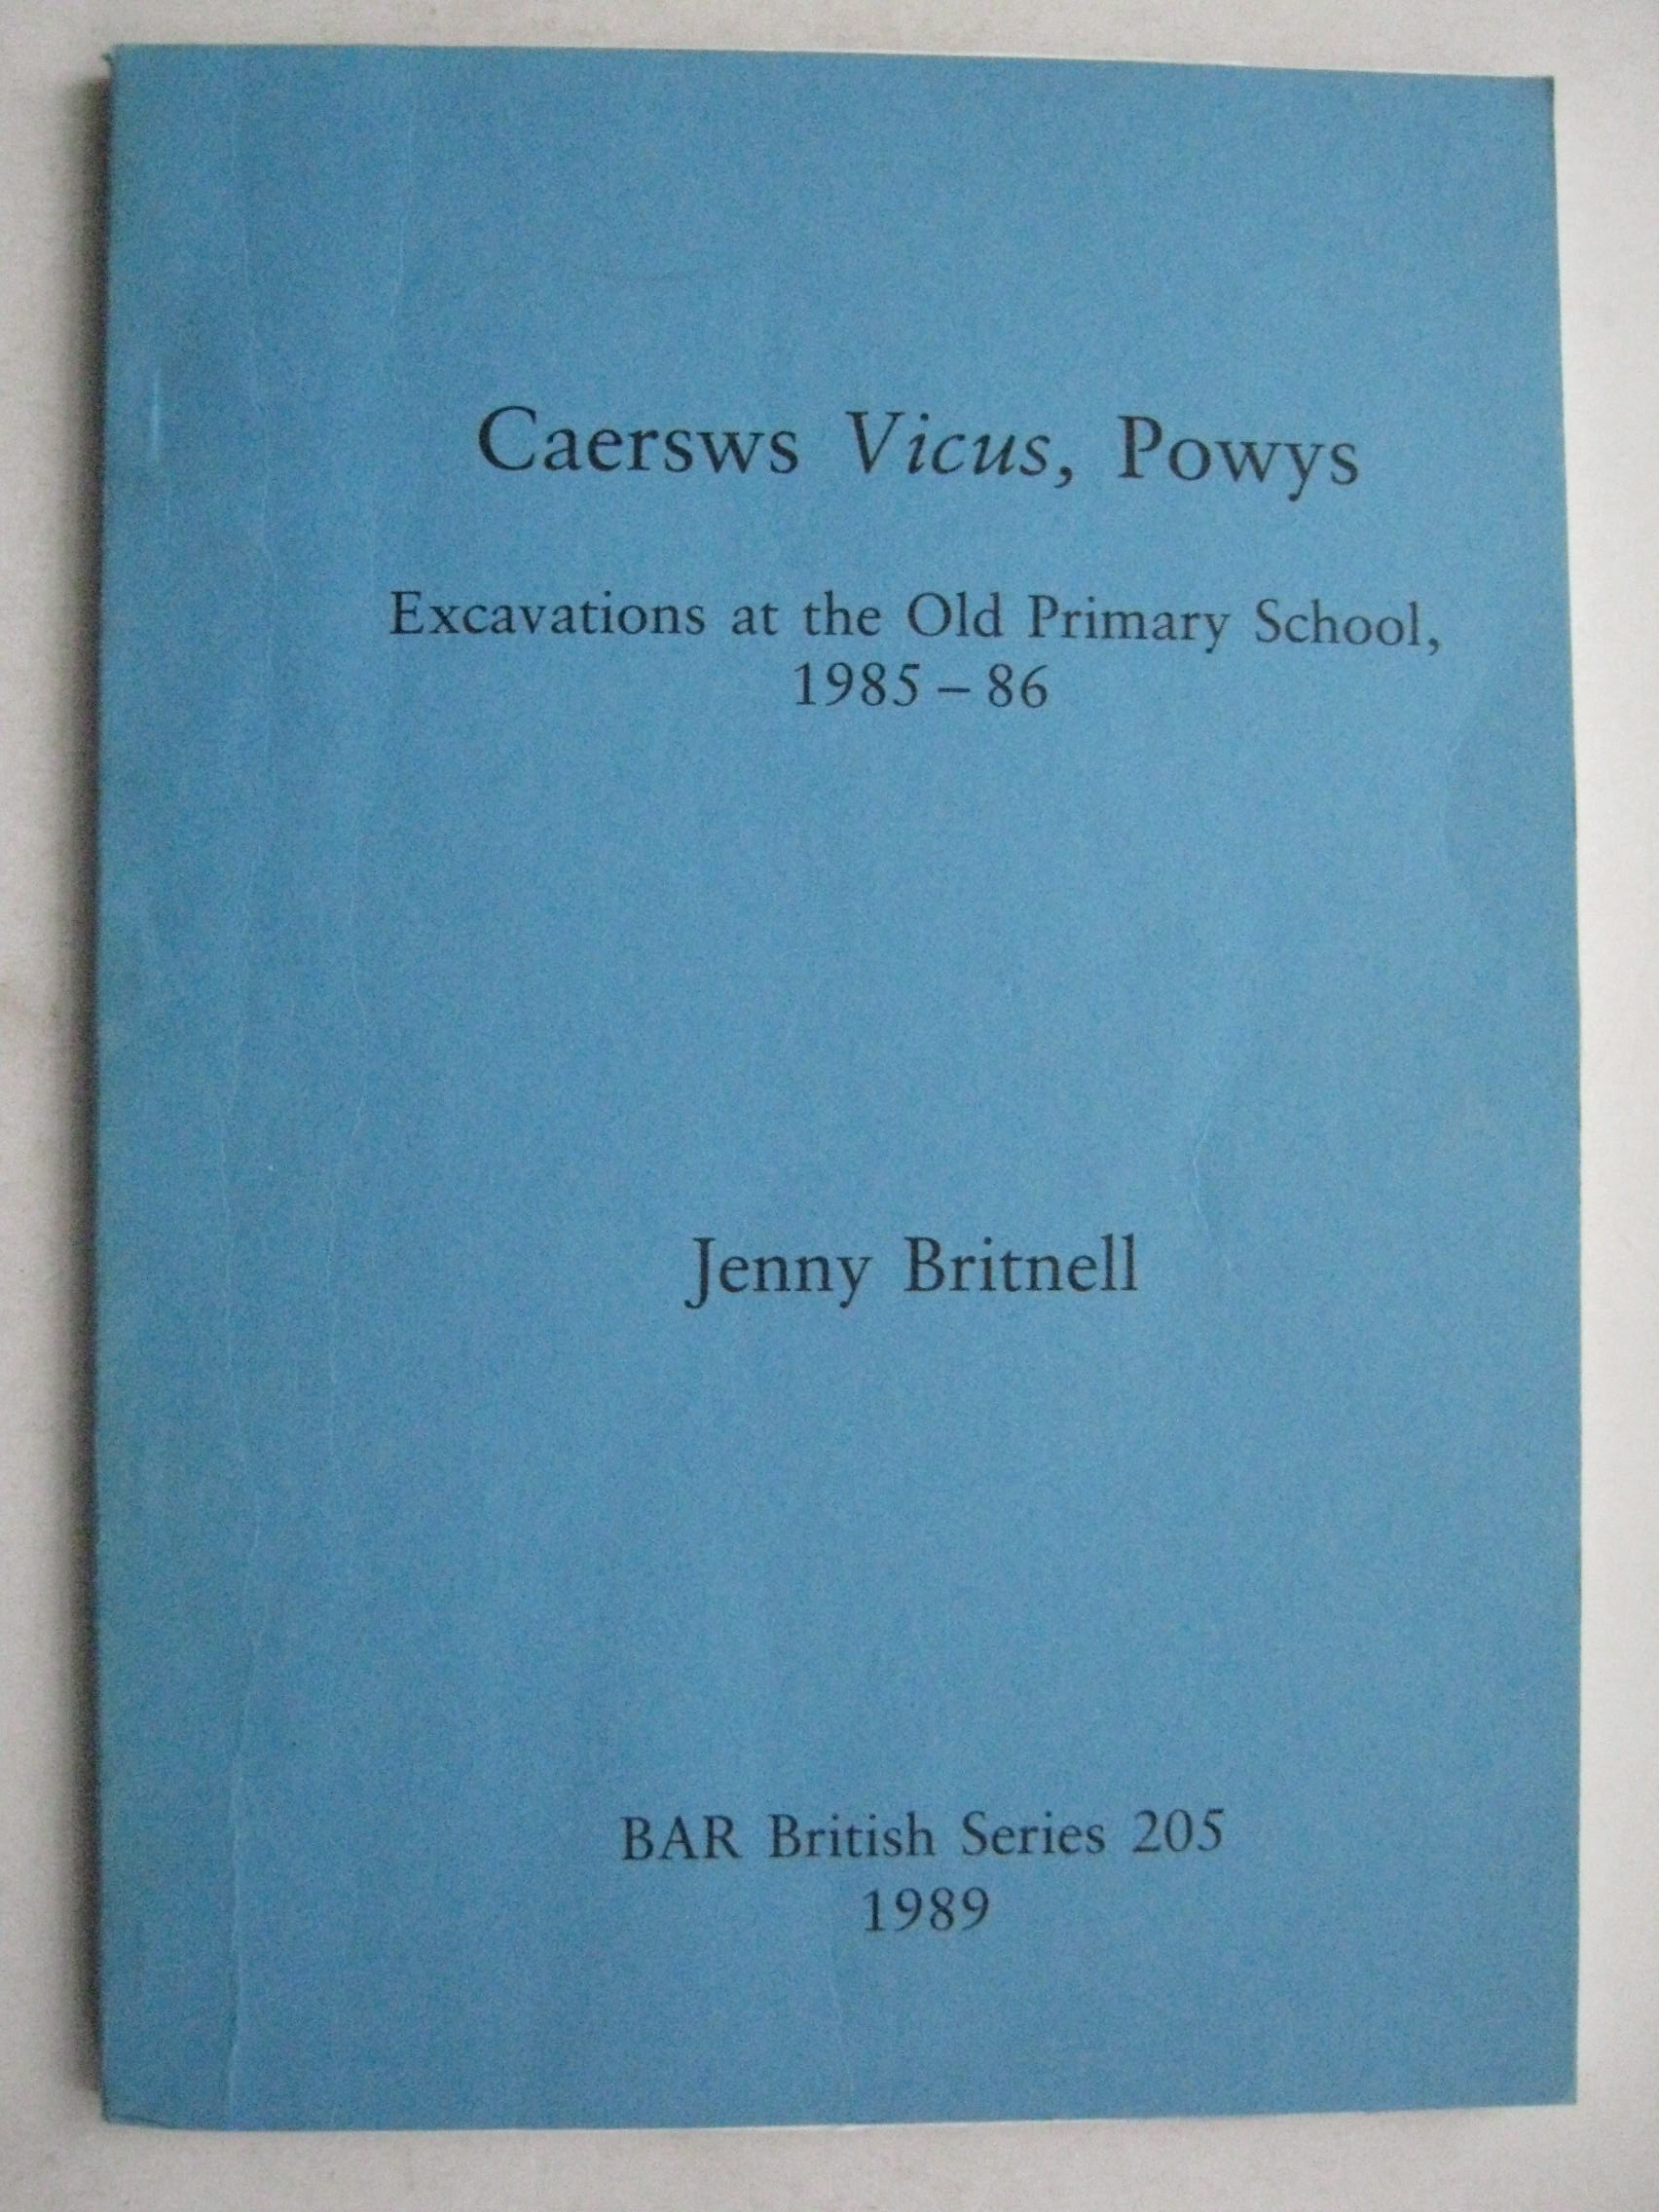 CAERSWS VICUS, POWYS: excavations at the old primary school, 1985-86, British Series 205, :, Britnell, Jenny ;